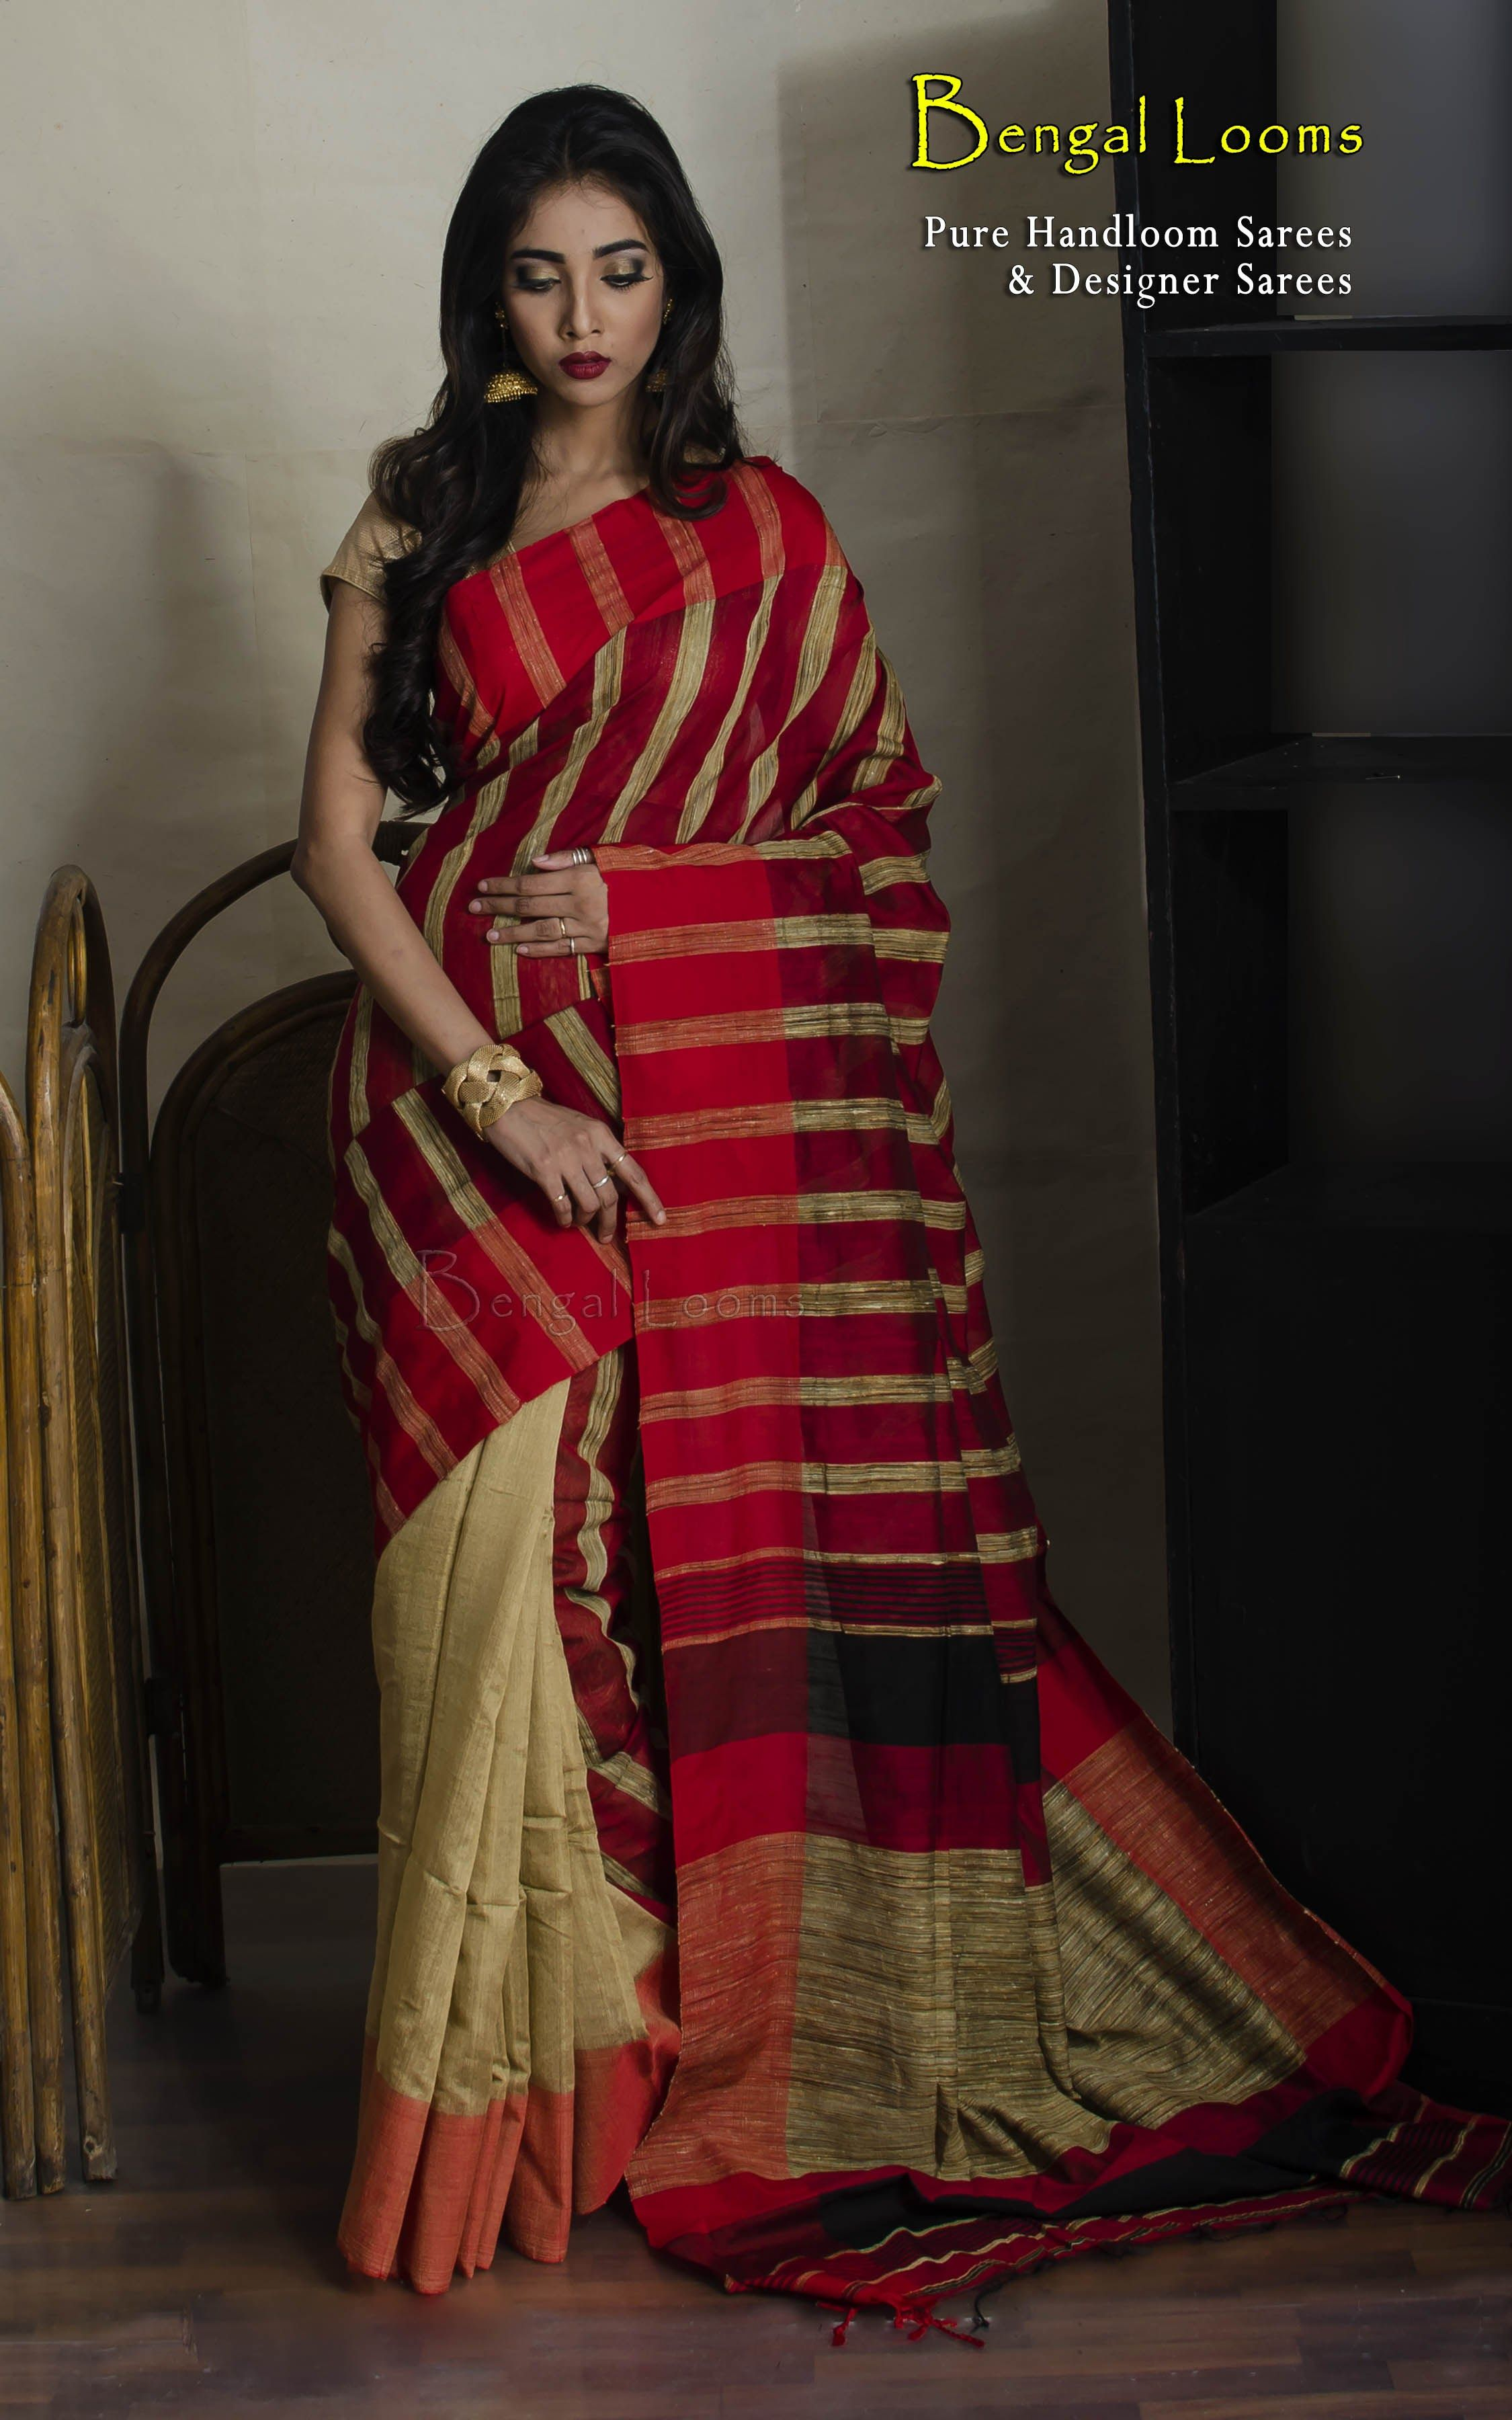 c17c41ce96 Pure Handloom Soft Cotton Khadi Saree with Gicha Stripe in Red Tussar Color.